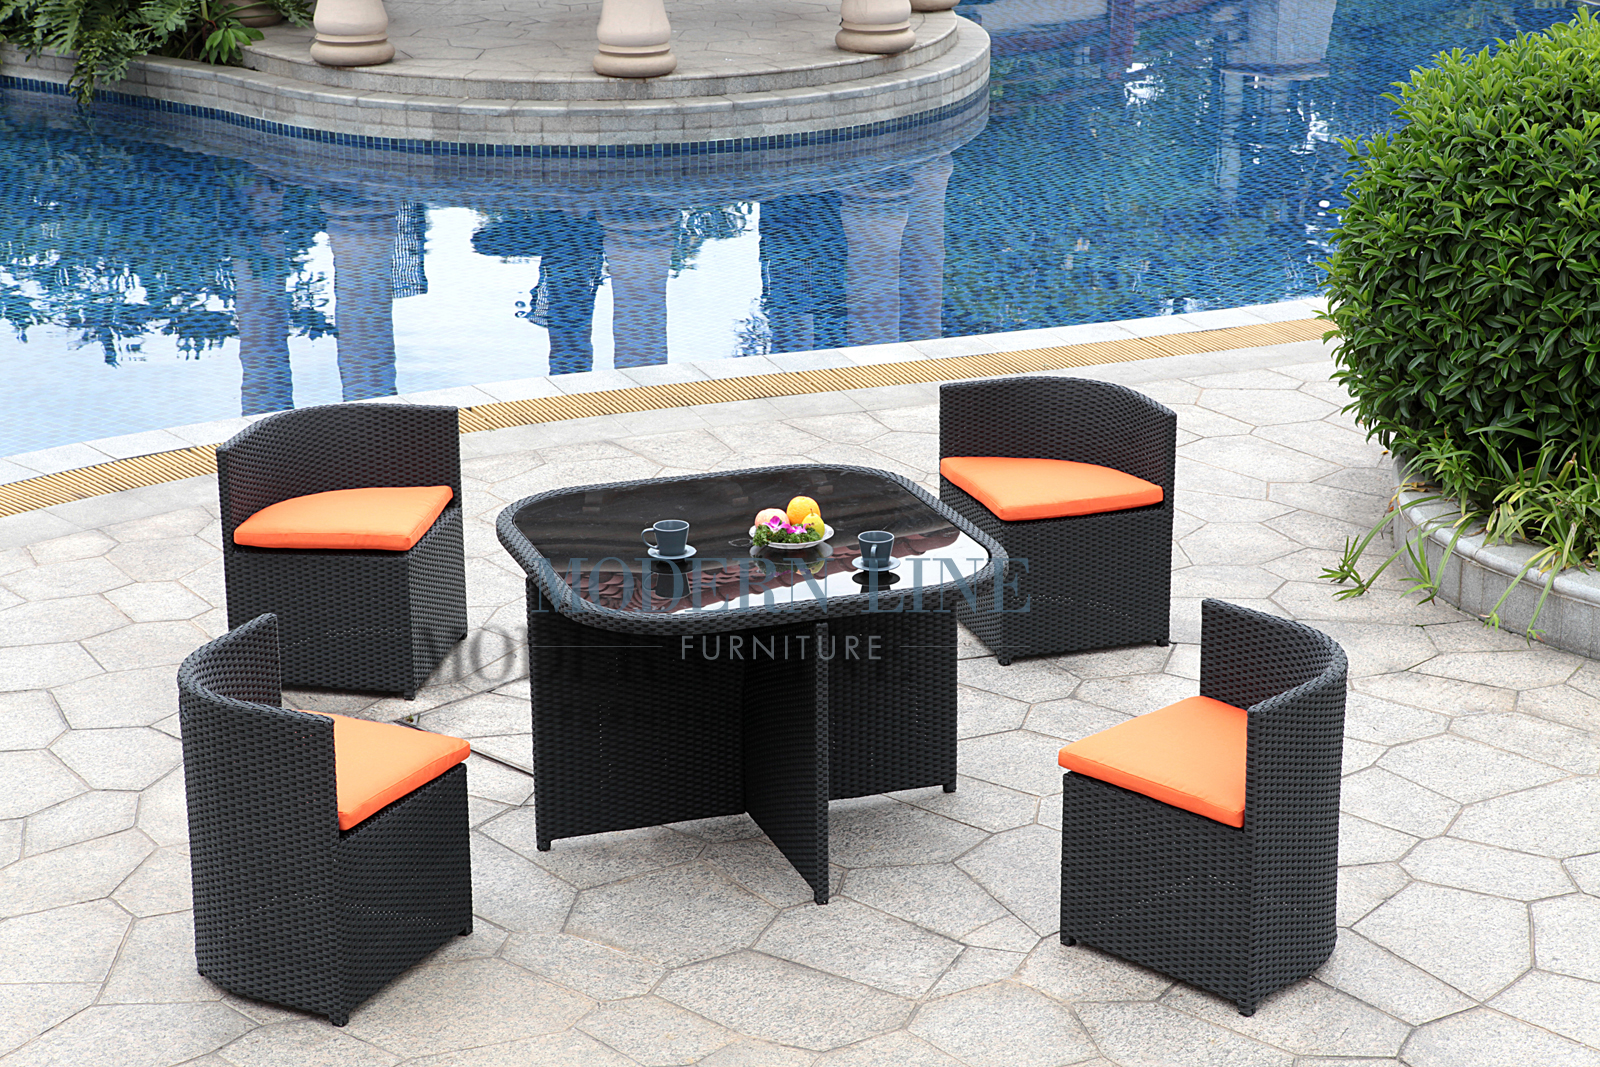 Modern Line Furniture   Commercial Furniture   Custom Made Furniture | Outdoor  Furniture | Outdoor Patio Dining | | Modern All In One Black Rattan Patio  ...